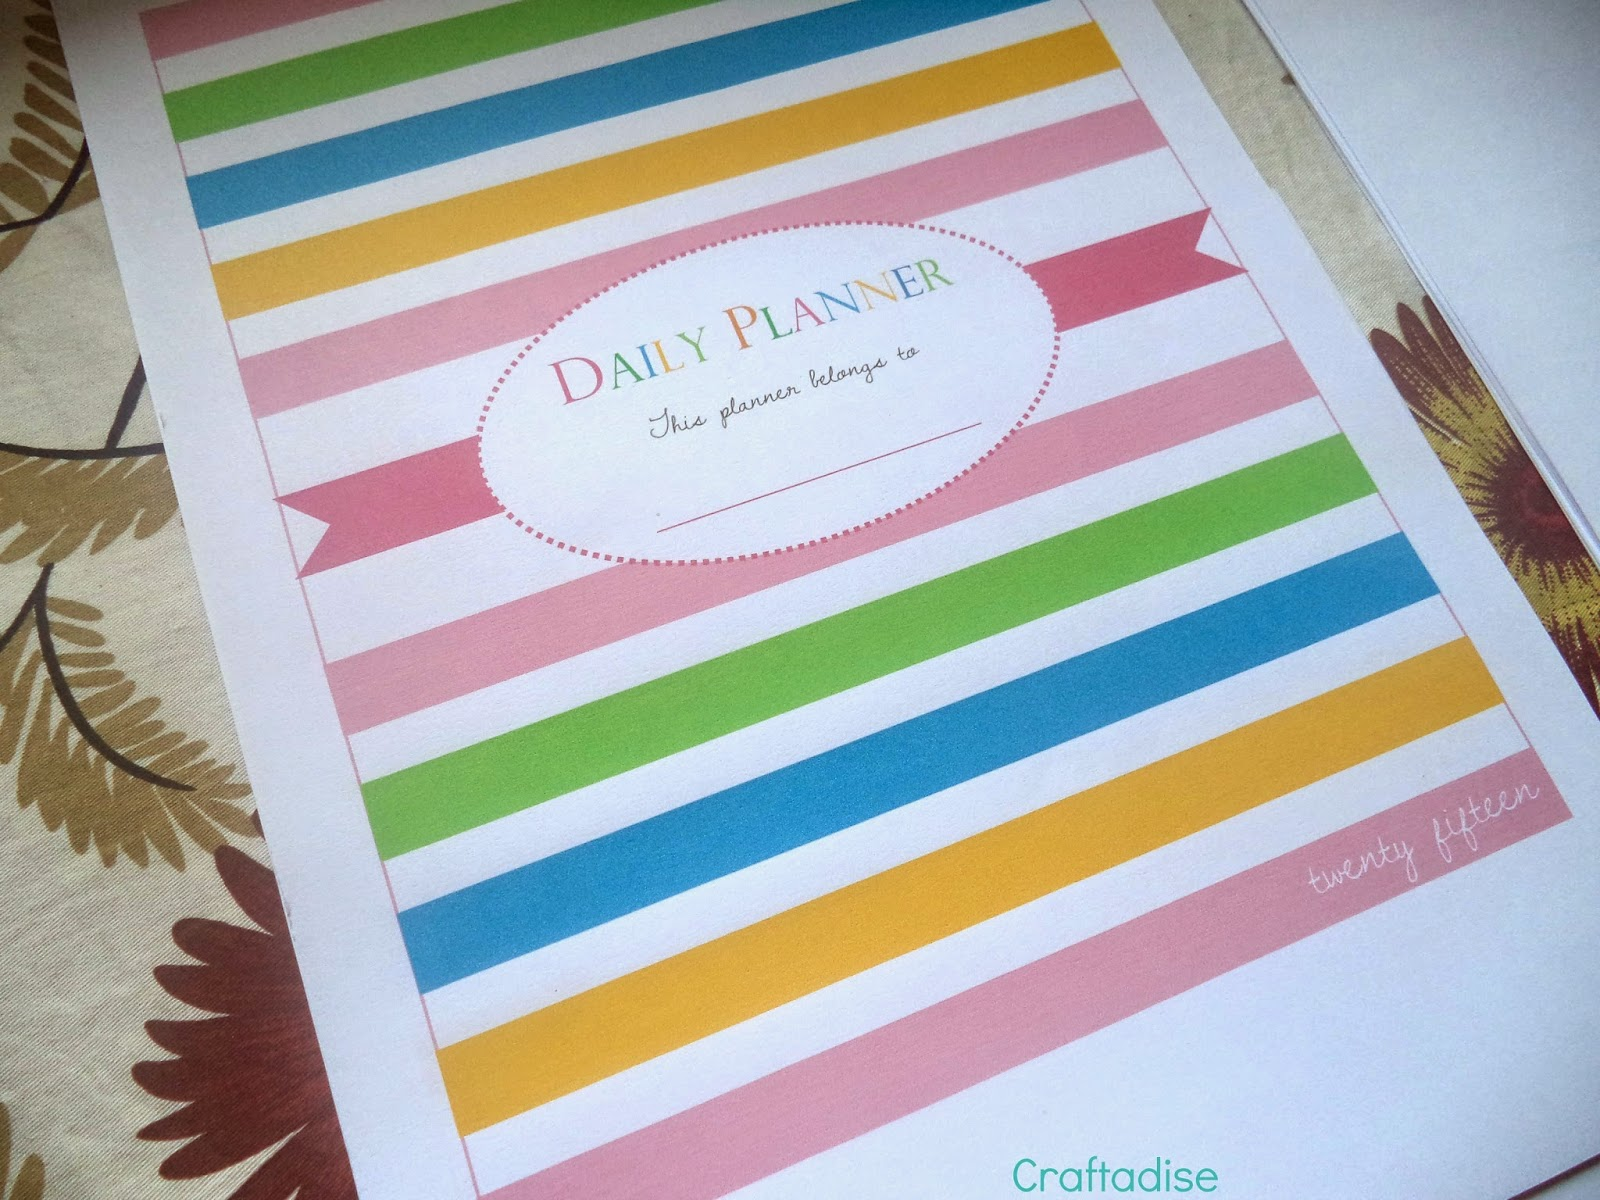 My 2015 Daily Planner in a colourful Sugar & Spice Ring Binder !!!